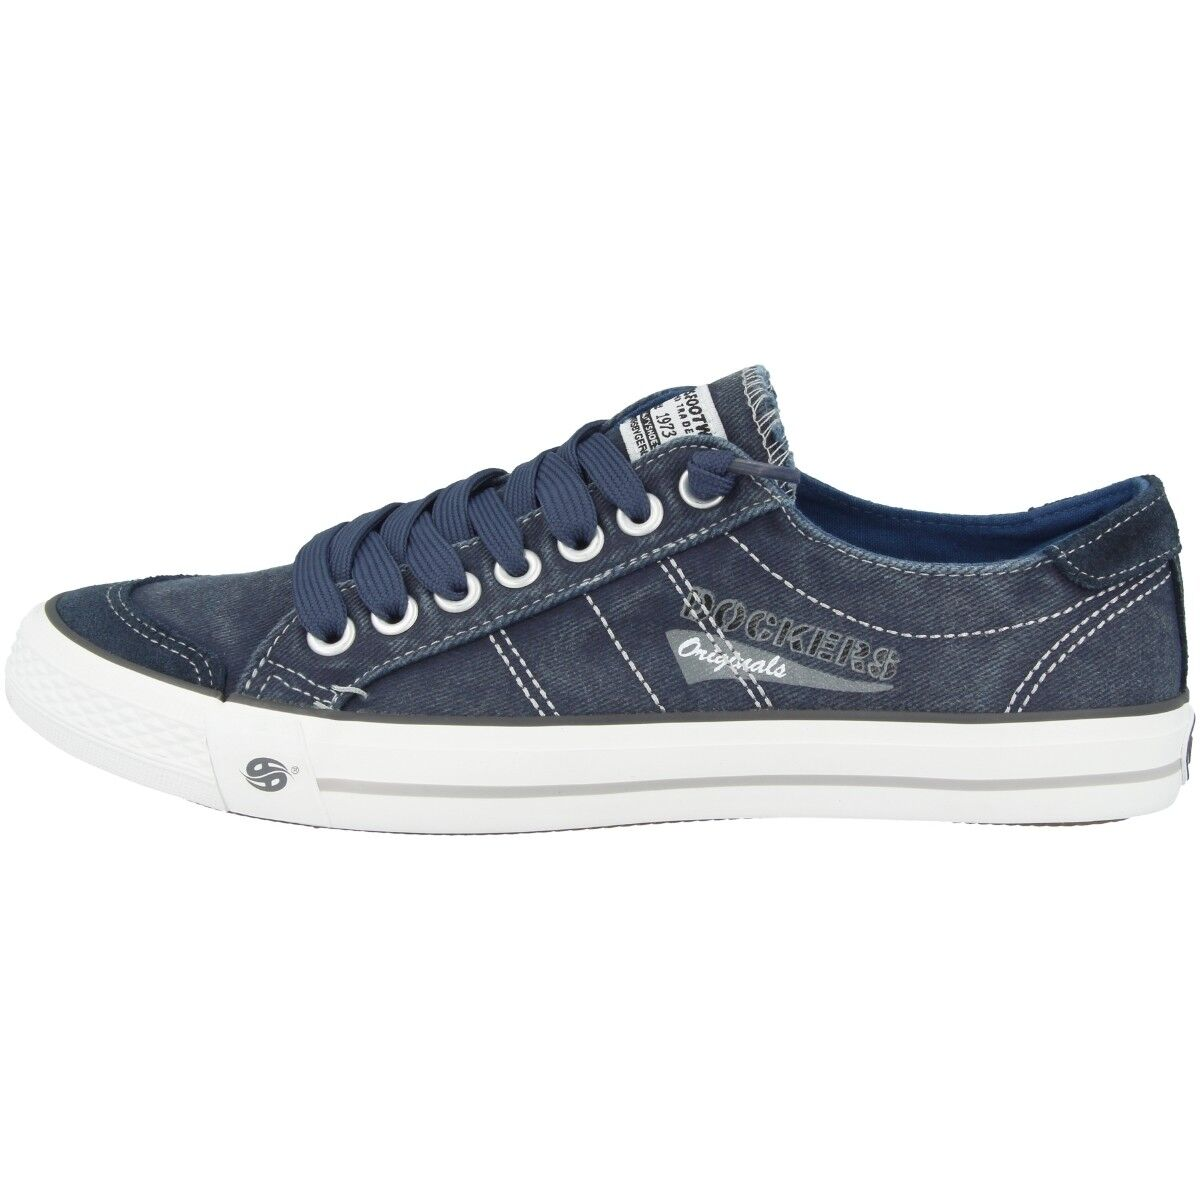 Dockers By Homme Gerli 30ST027 Chaussures Homme By Toile Baskets Loisirs 30ST027-790670 c6cb55